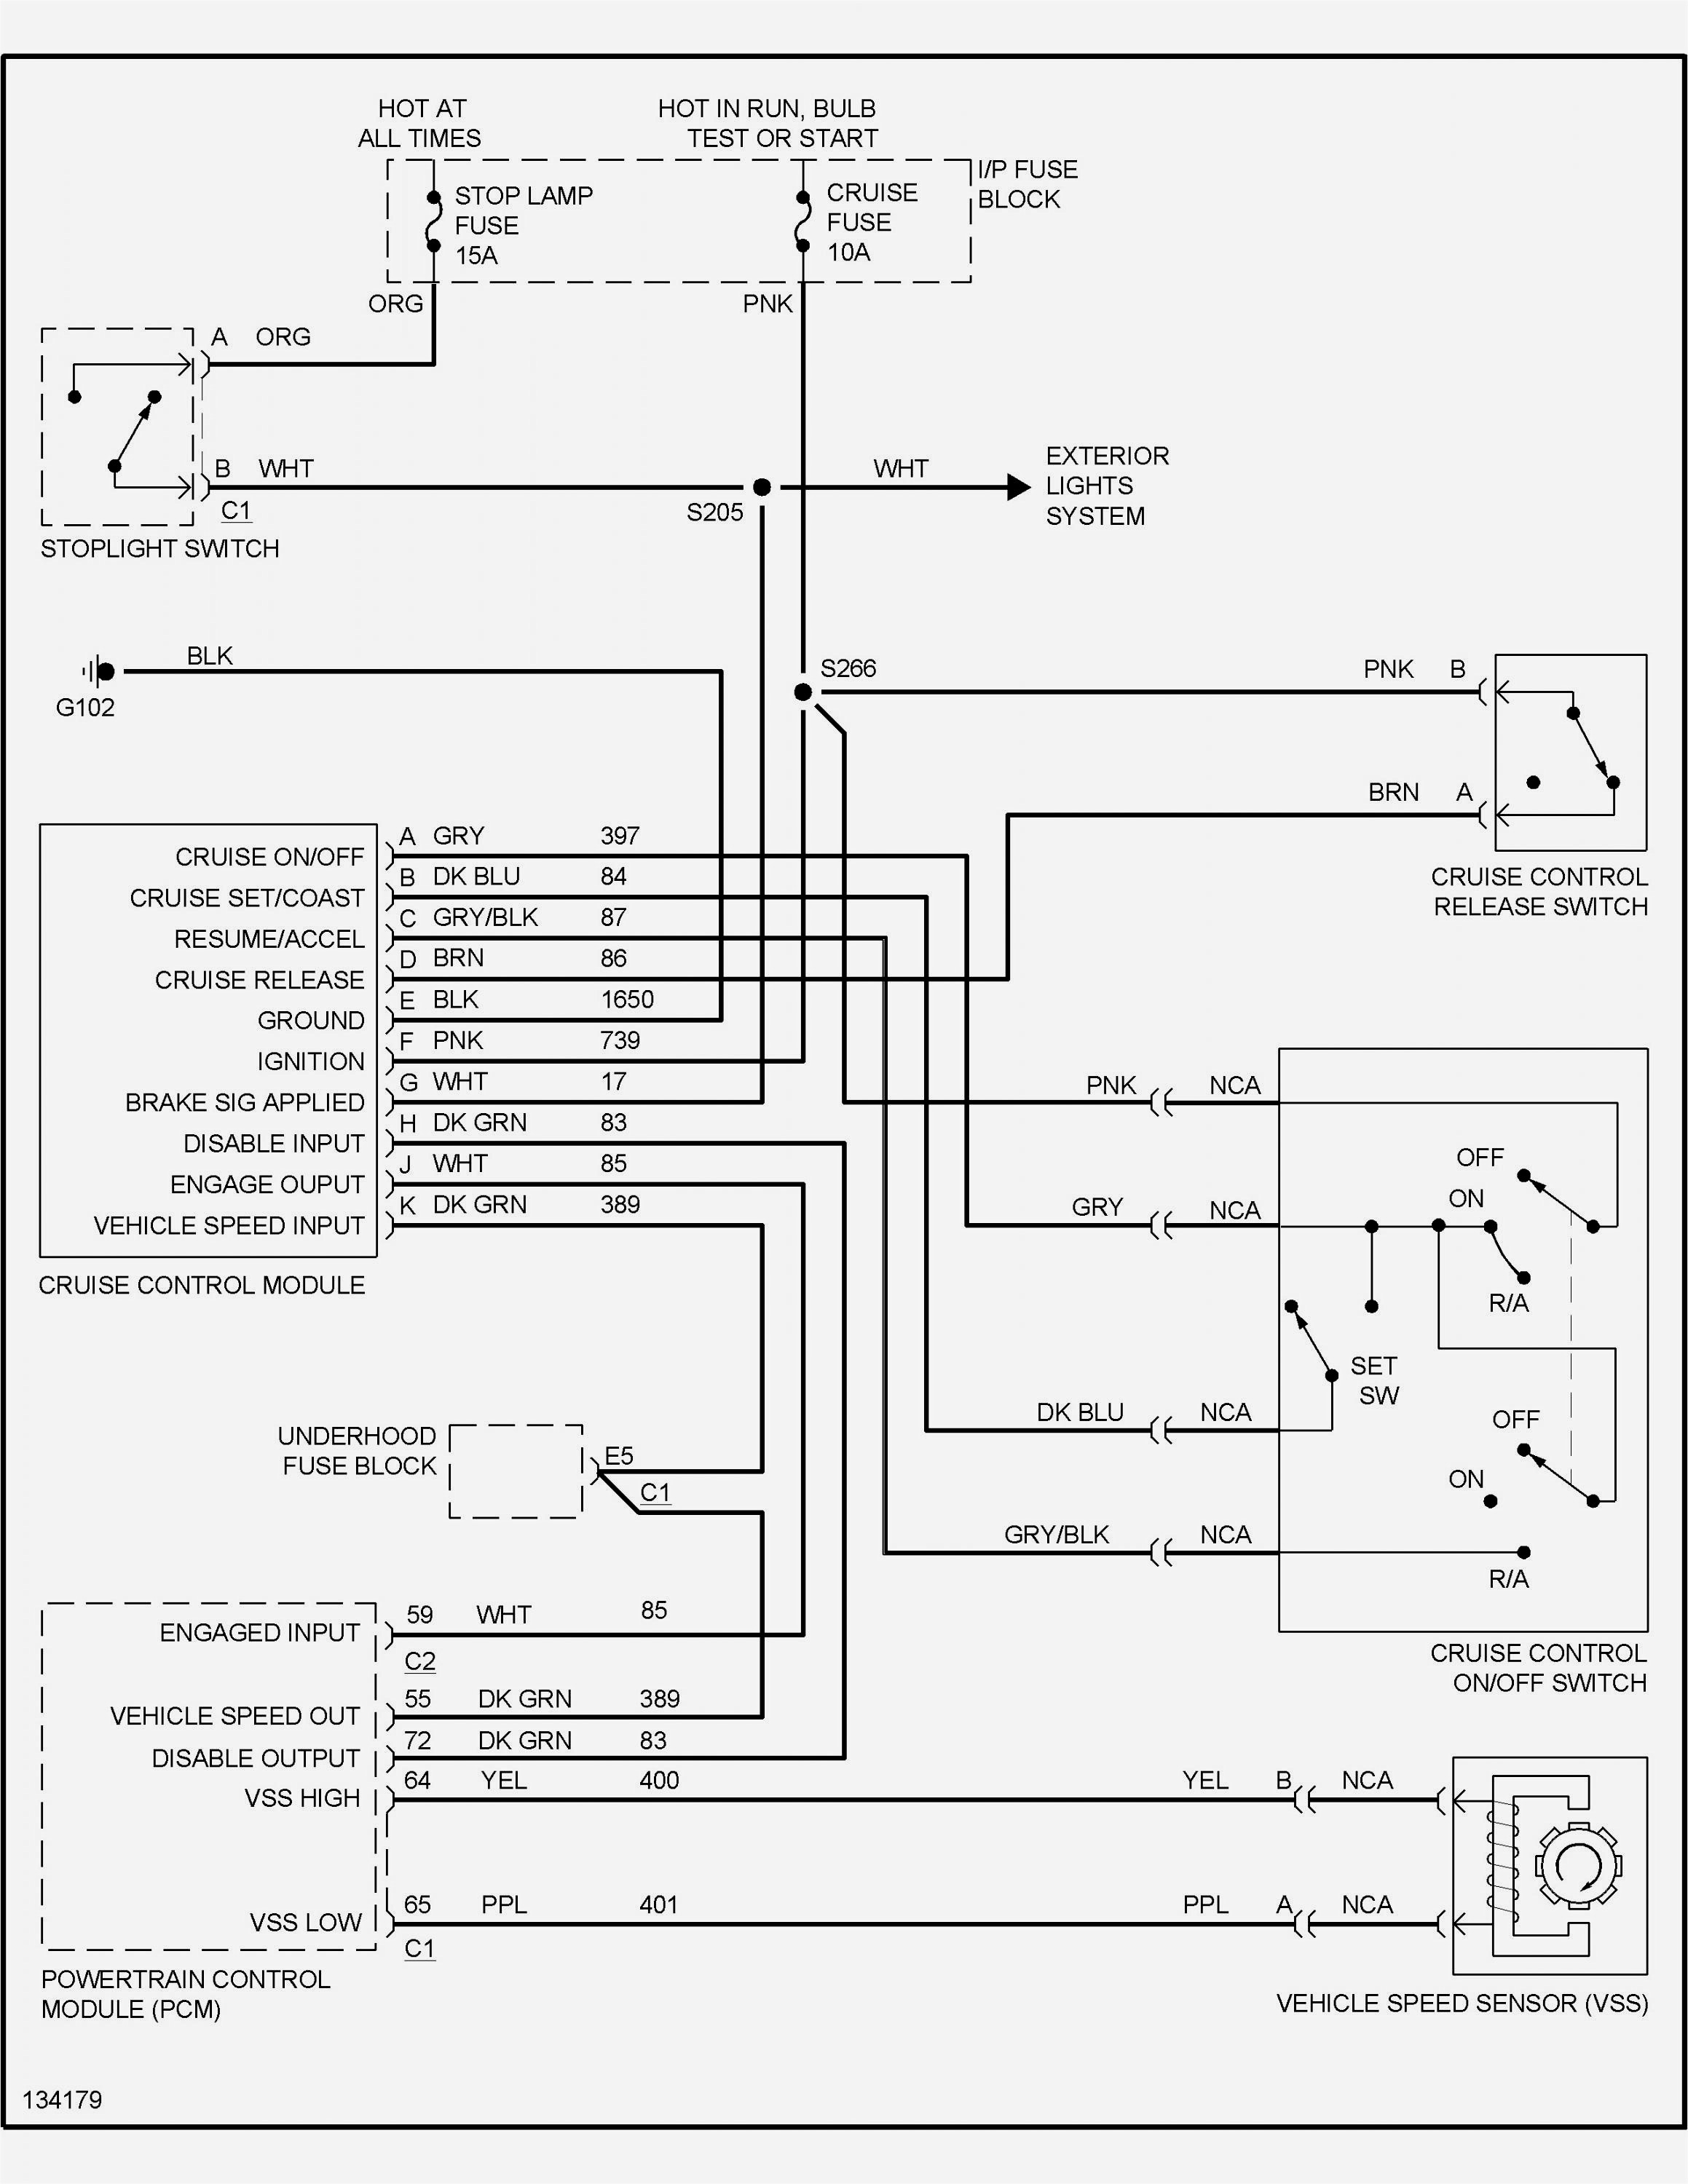 Sony Cdx Gt300 Wiring Harness - Auto Electrical Wiring DiagramWiring Diagram